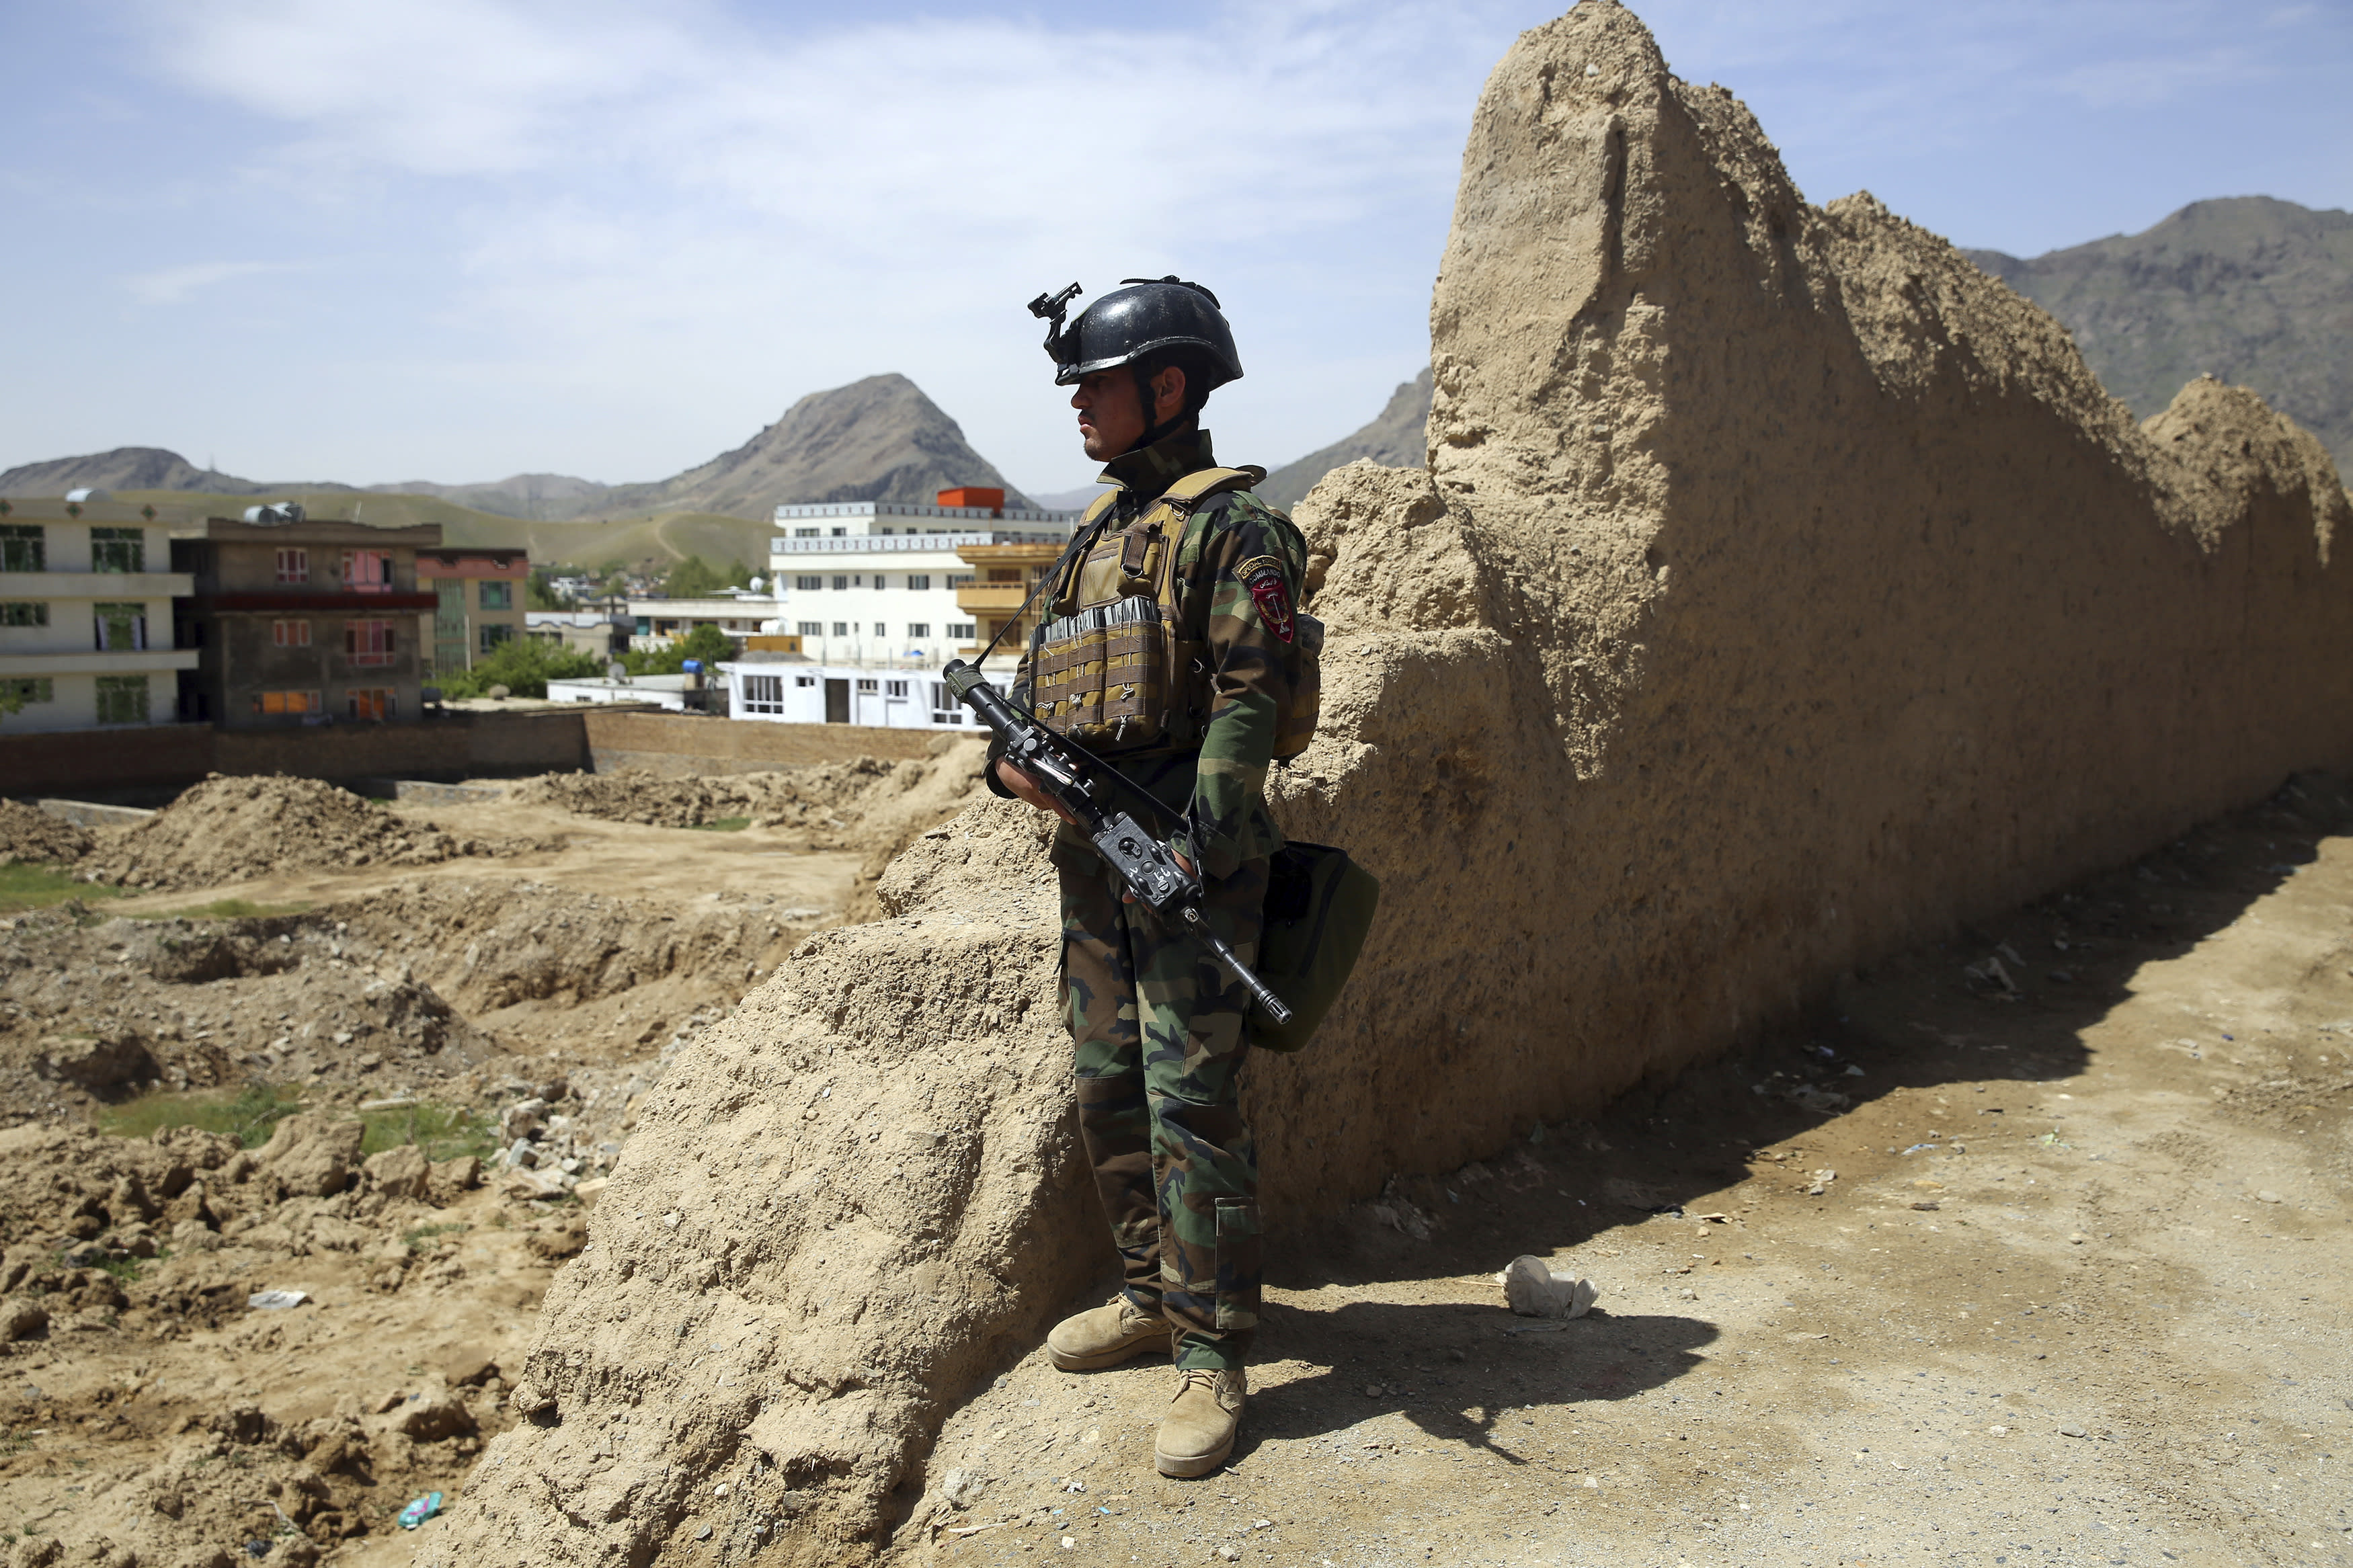 An Afghan special force member stands guard at the site of a suicide bomber attack on the outskirts of Kabul, Afghanistan, Wednesday, April 29, 2020. A suicide bomber on Wednesday targeted a base belonging to Afghan special forces on the southern outskirts of the capital, officials said. (AP Photo/Rahmat Gul)